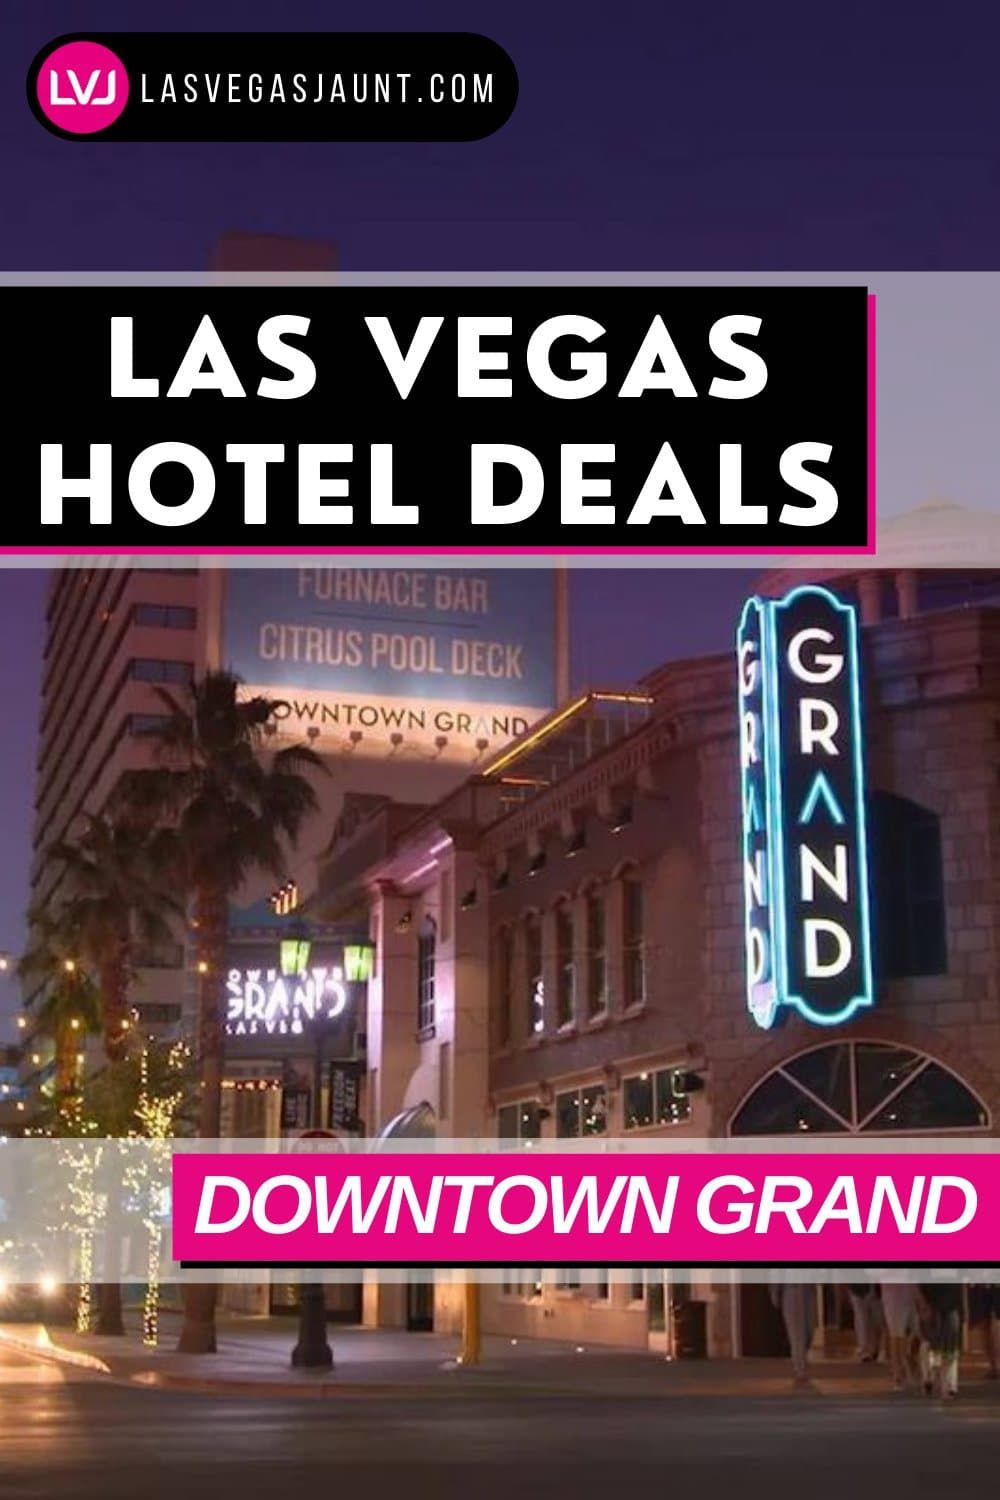 Downtown Grand Hotel Las Vegas Deals Promo Codes & Discounts